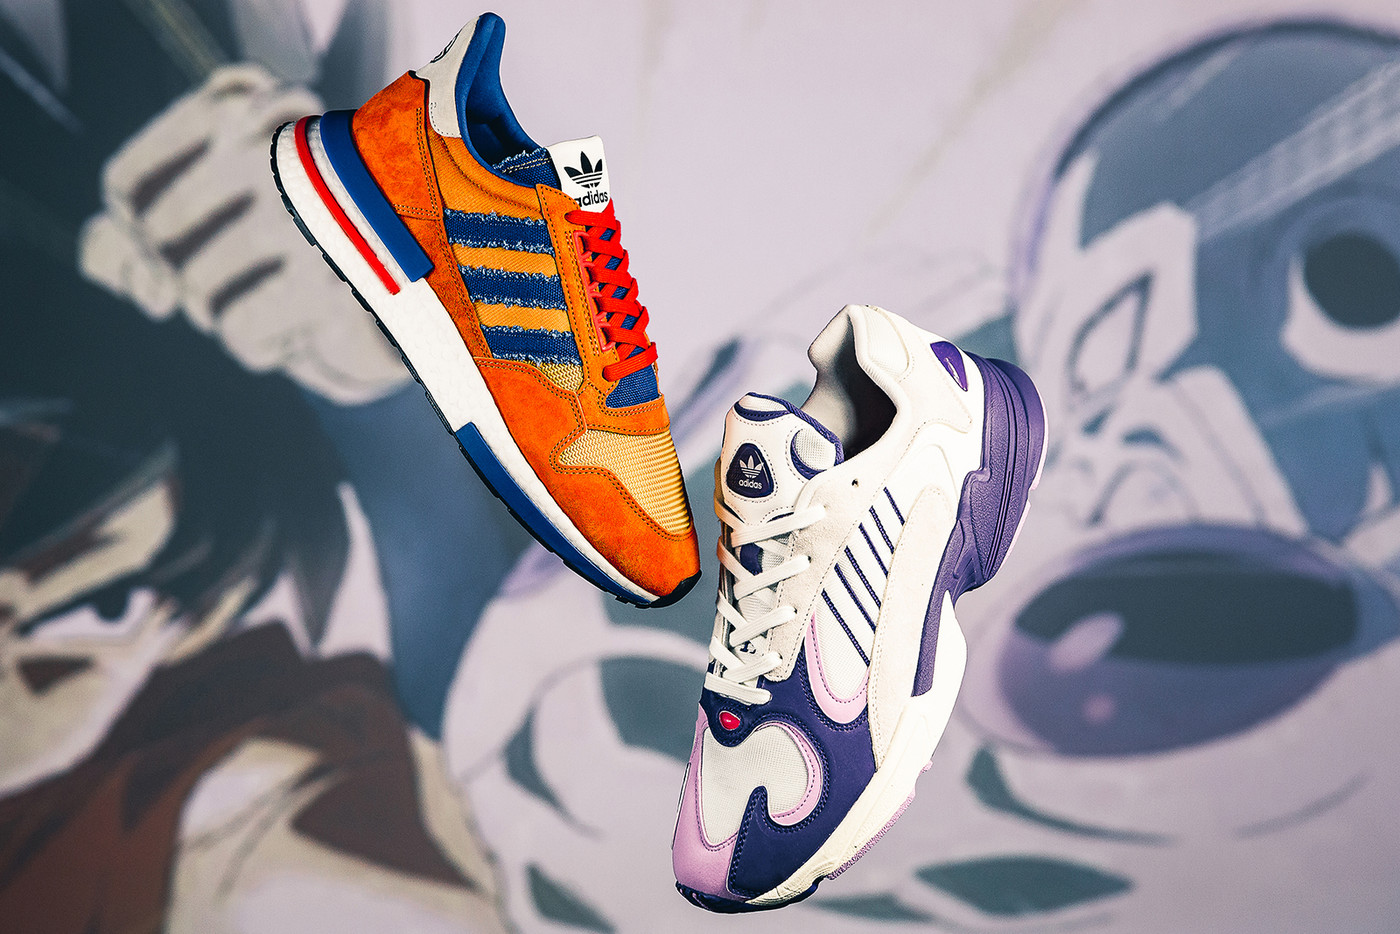 a69b3e071 Adidas Dragon Ball Z Shoes Release Date and Early Links